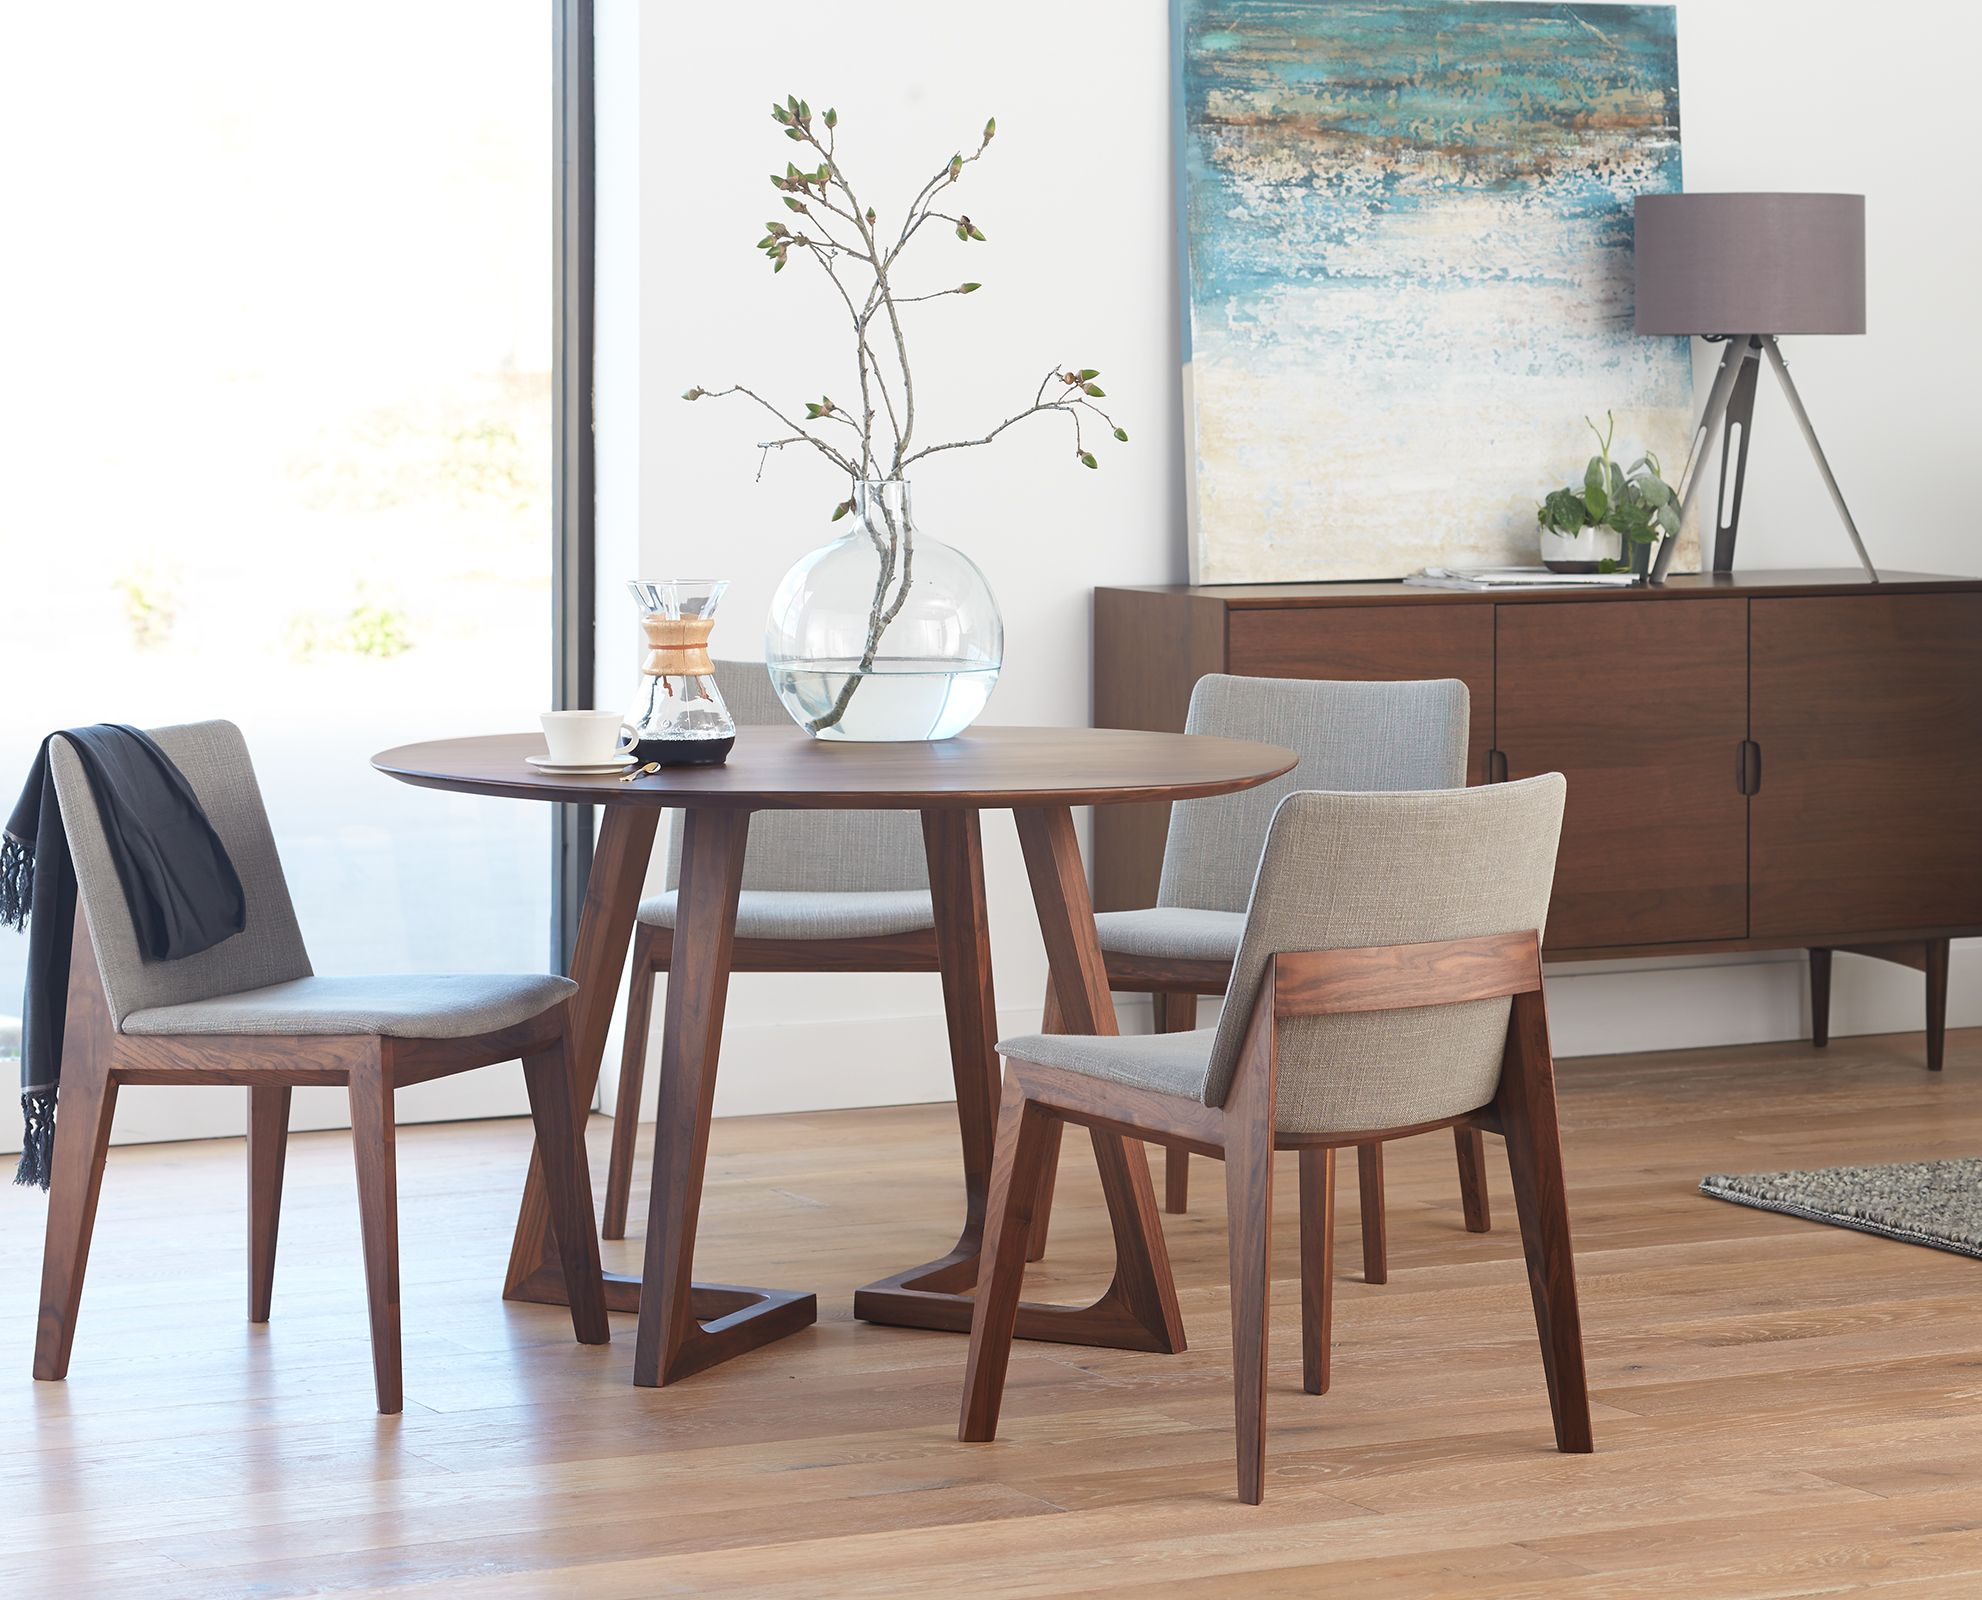 Round table and chairs from Dania Round